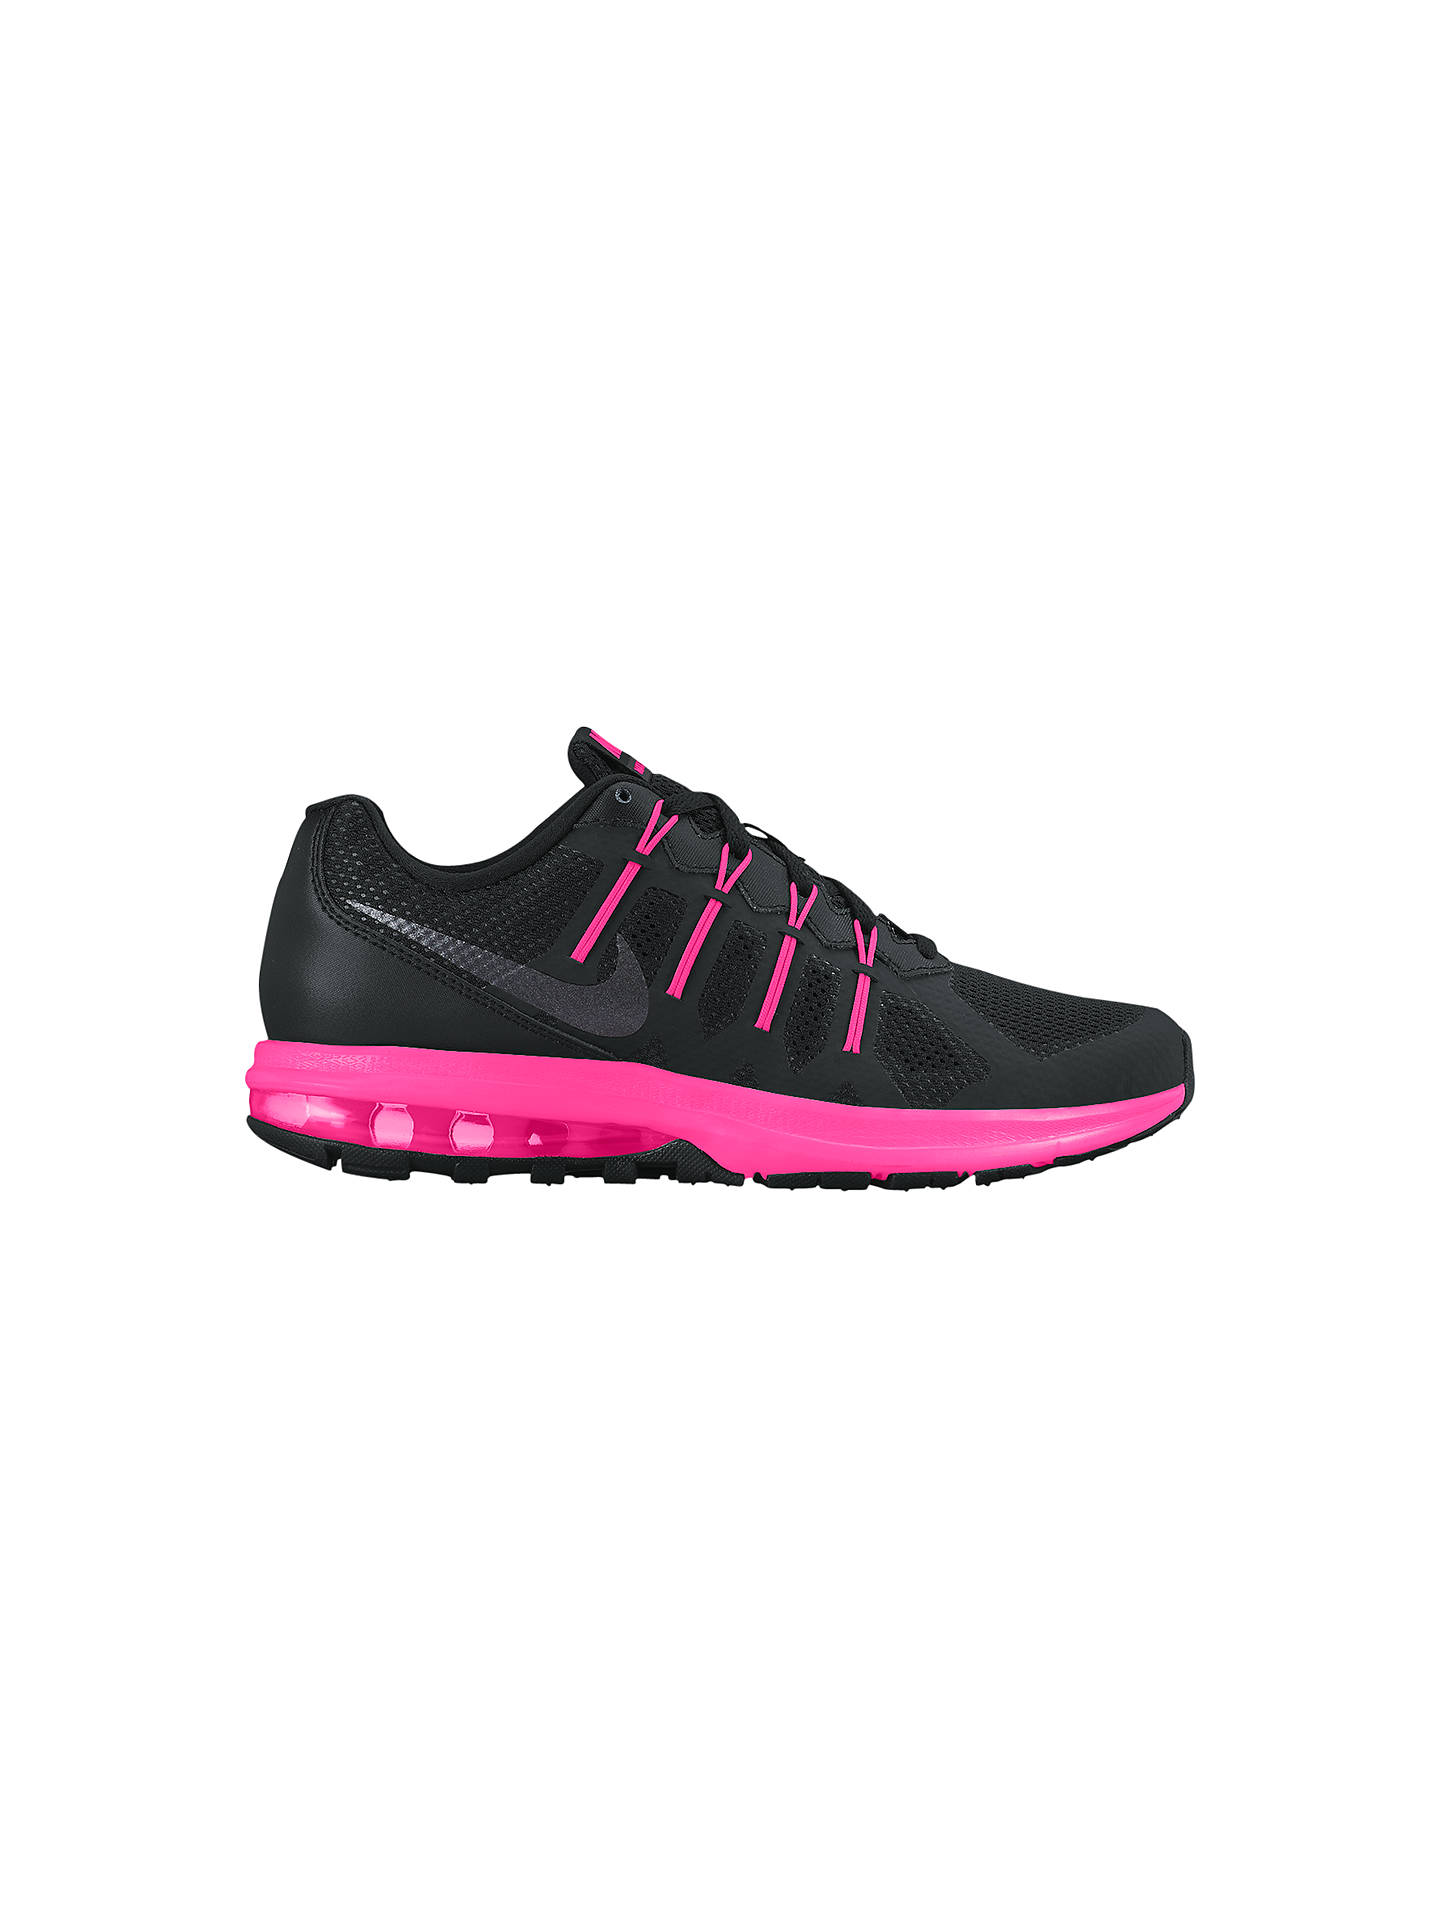 buy online dfbd9 b581c Buy Nike Air Max Dynasty Women s Running Shoes, Black Pink, 4 Online at ...